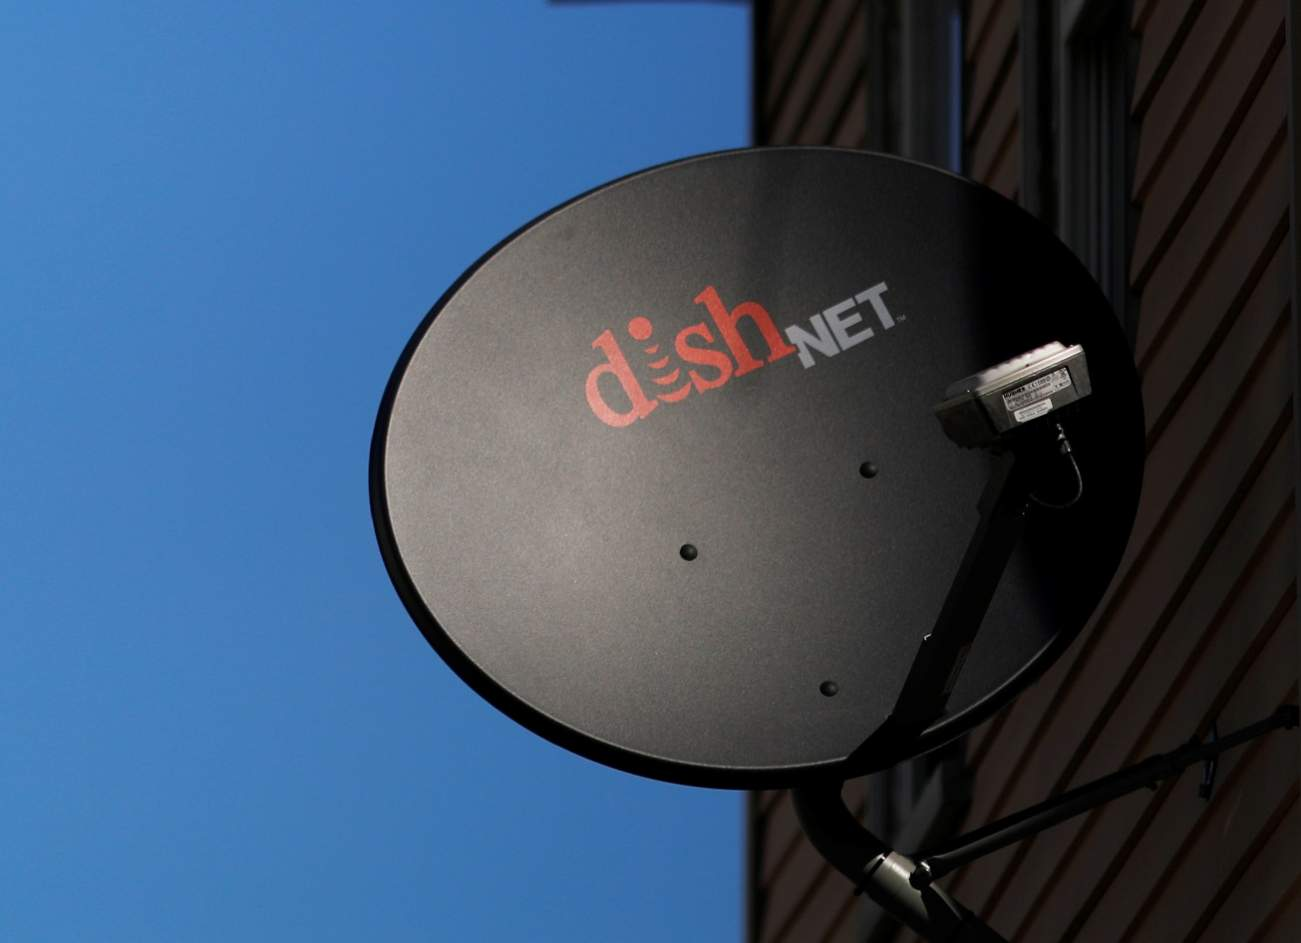 Why DirecTV, Dish Network, Comcast and Verizon Will Get Slaughtered by Netflix and Streaming Services